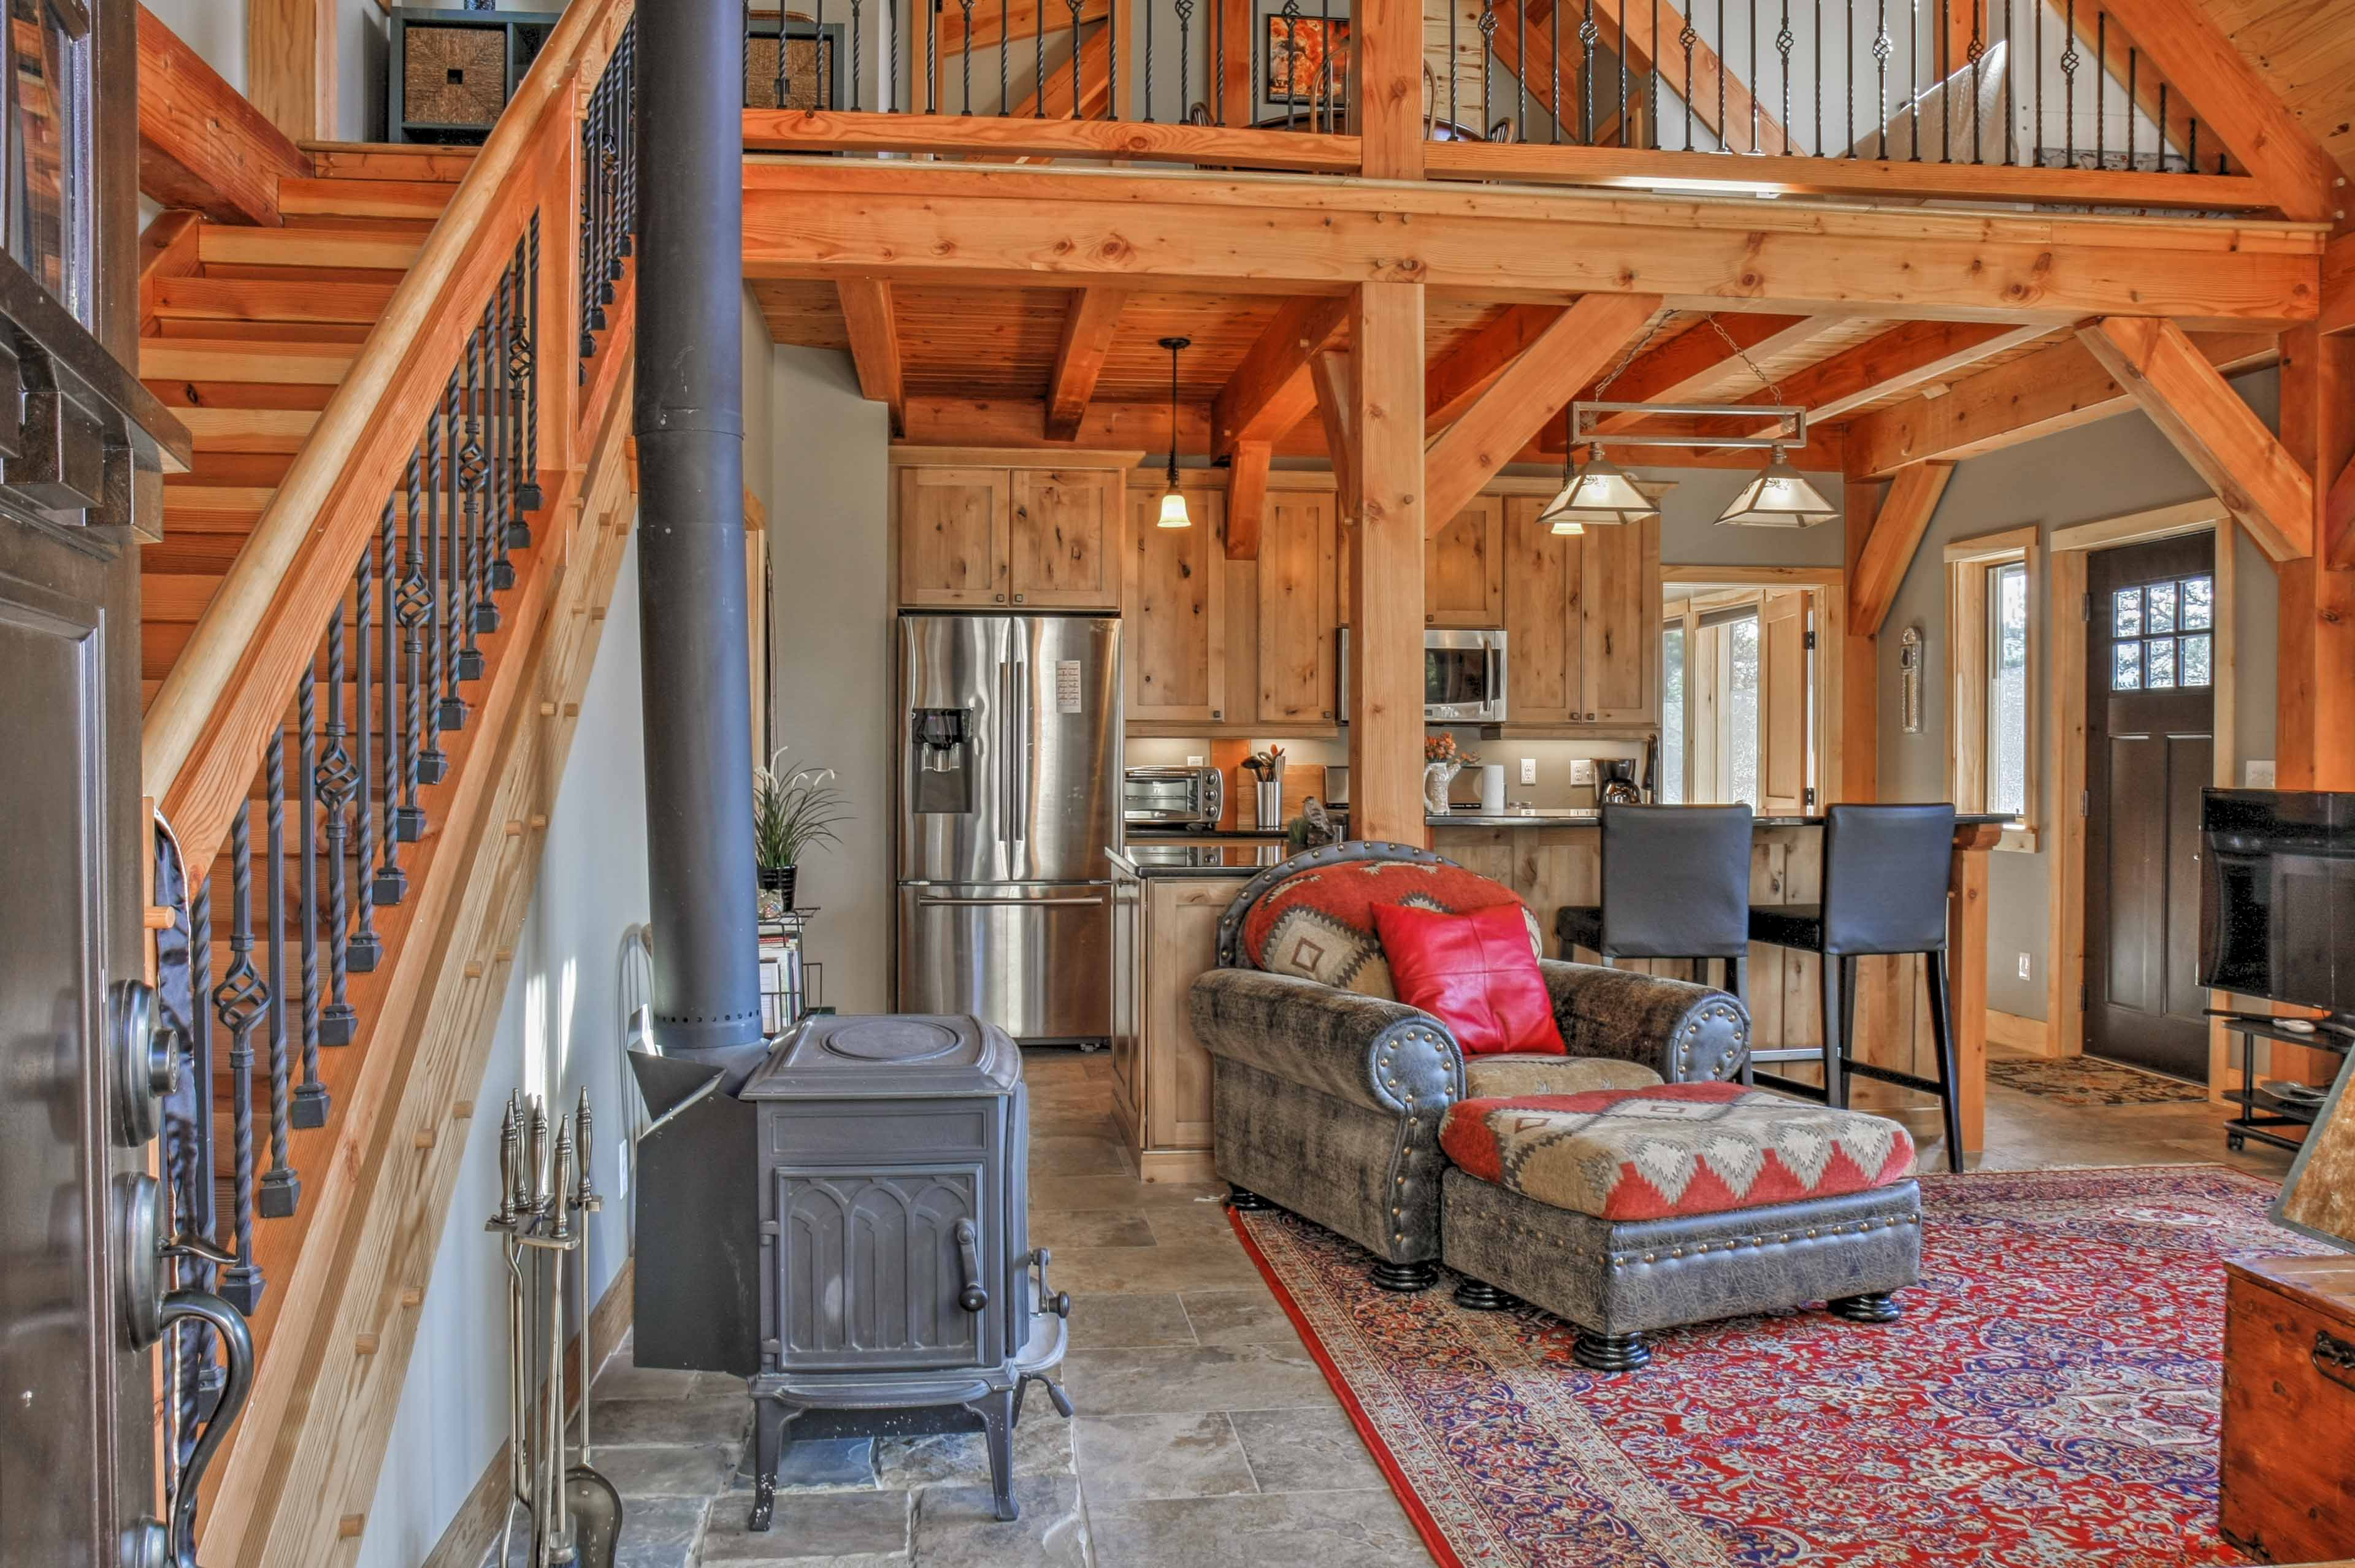 High vaulted ceilings and floor-to-ceiling windows open the 1,600-sq-ft space.